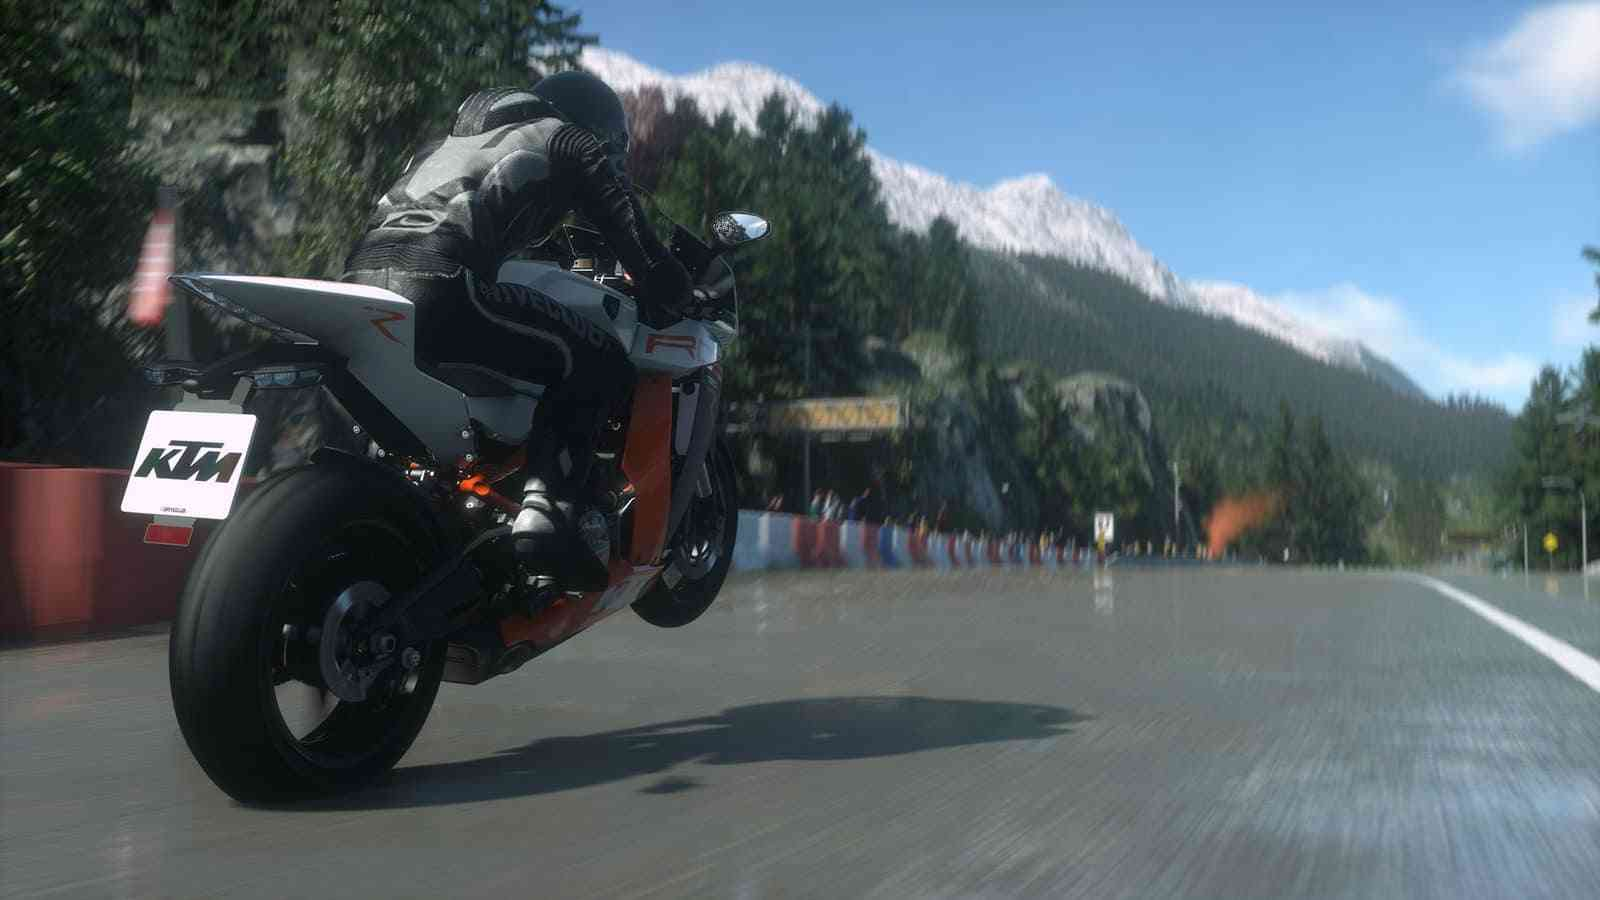 driveclub bikes review two wheels are just as fun as four in this expansion pack cogconnected. Black Bedroom Furniture Sets. Home Design Ideas